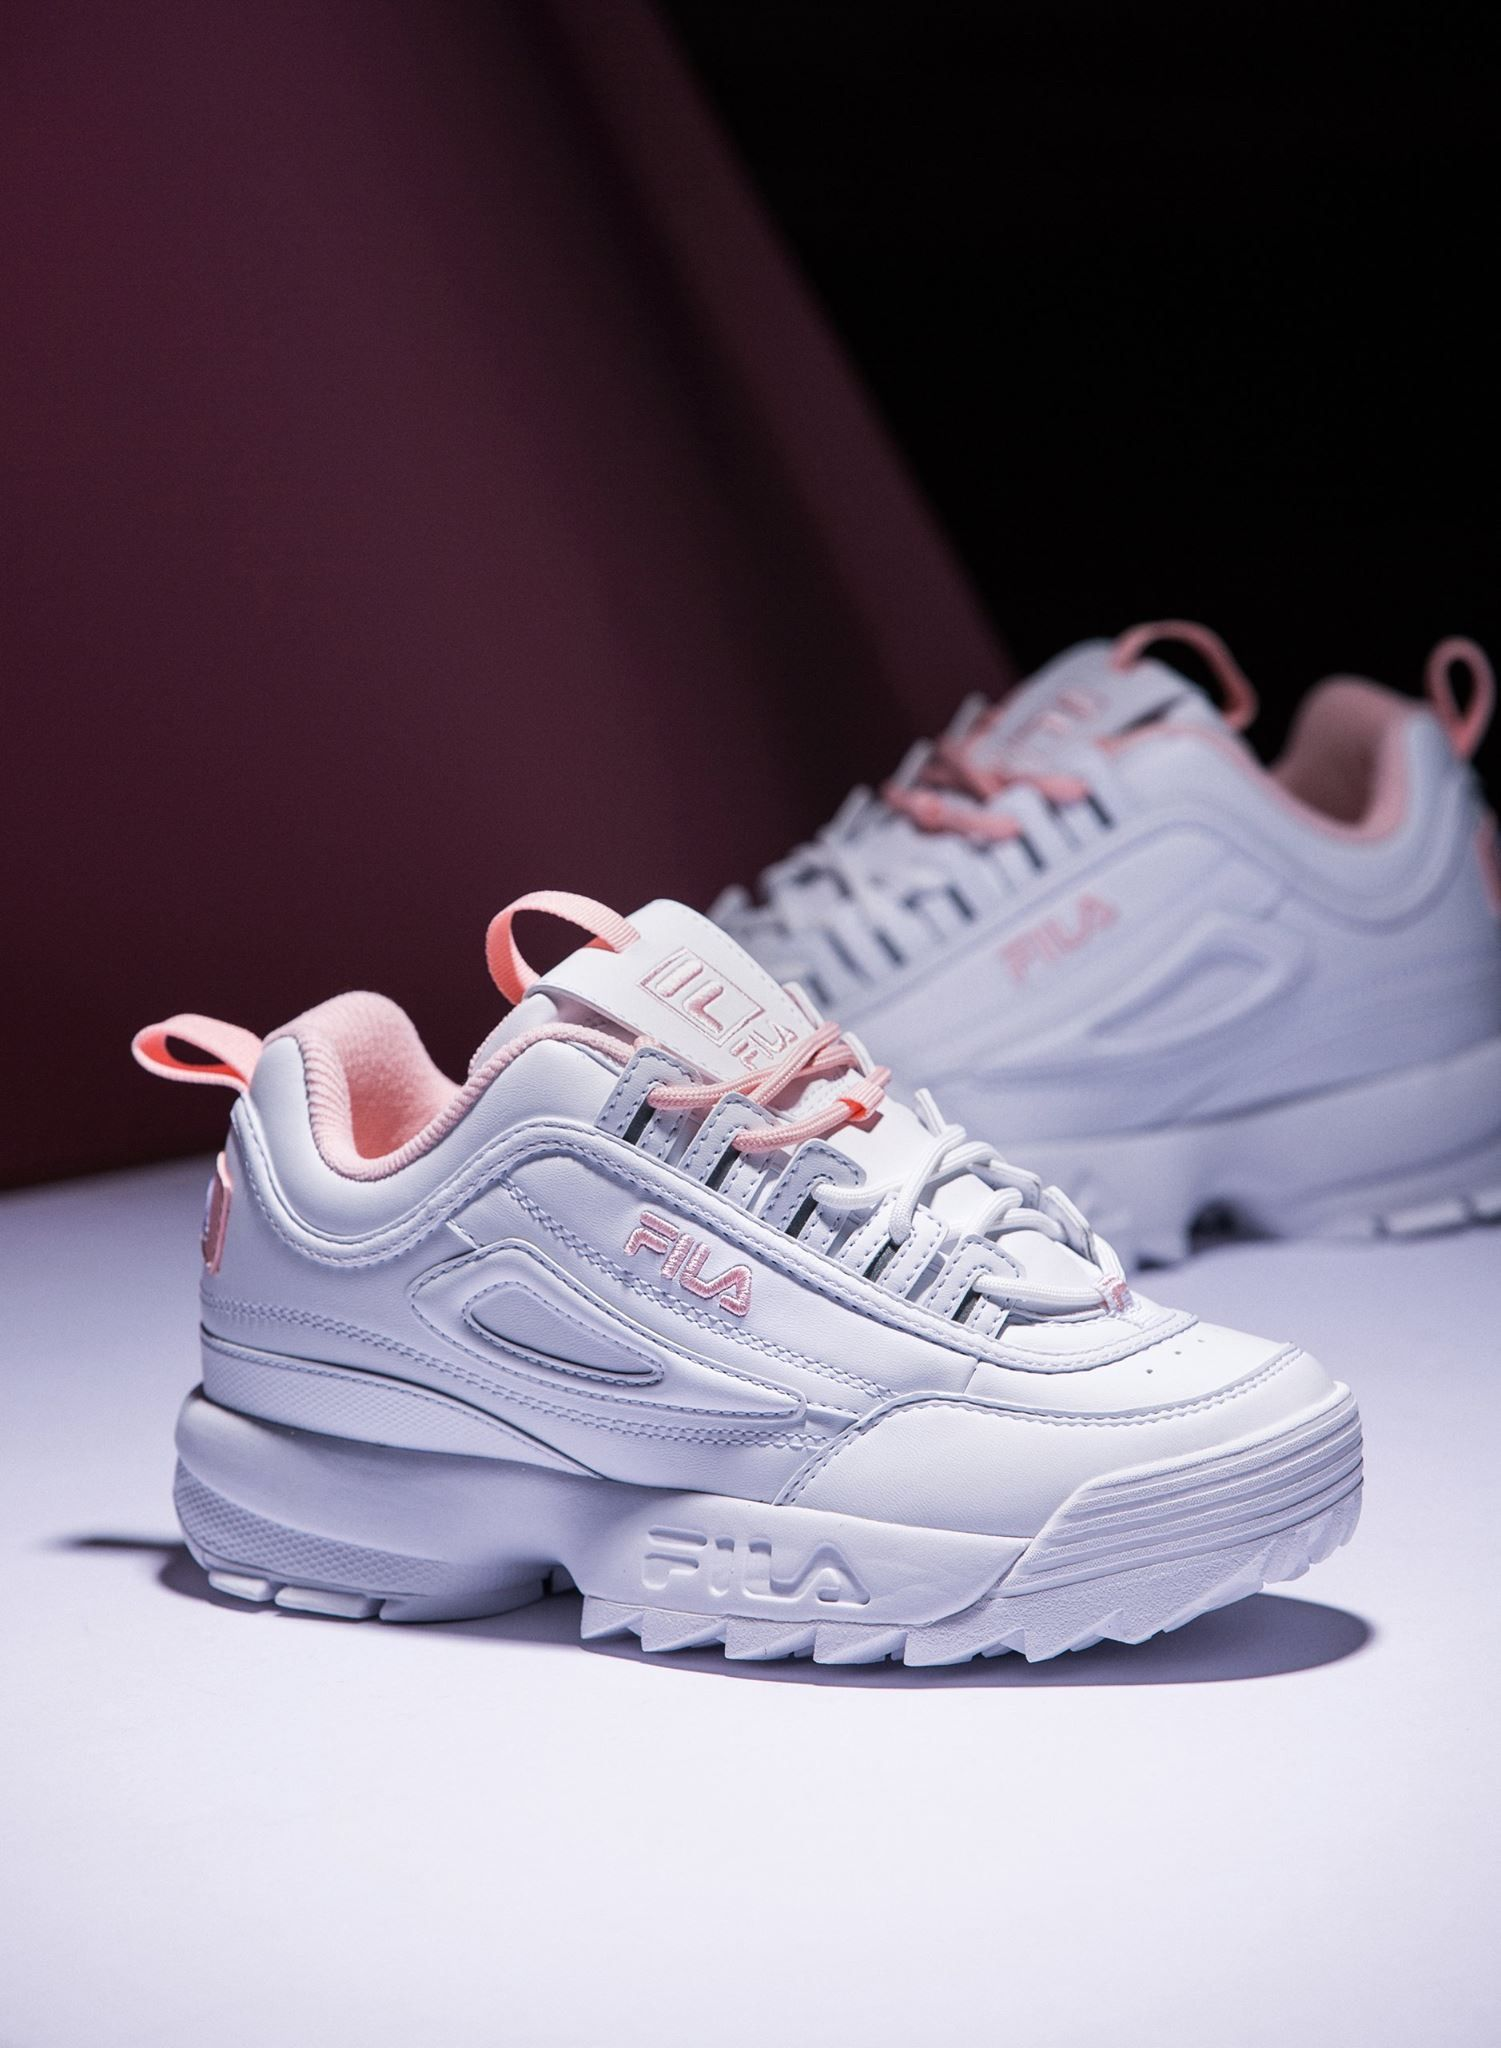 FILA #shoes #sneaker #style #running #white #pink | CUTE in ...